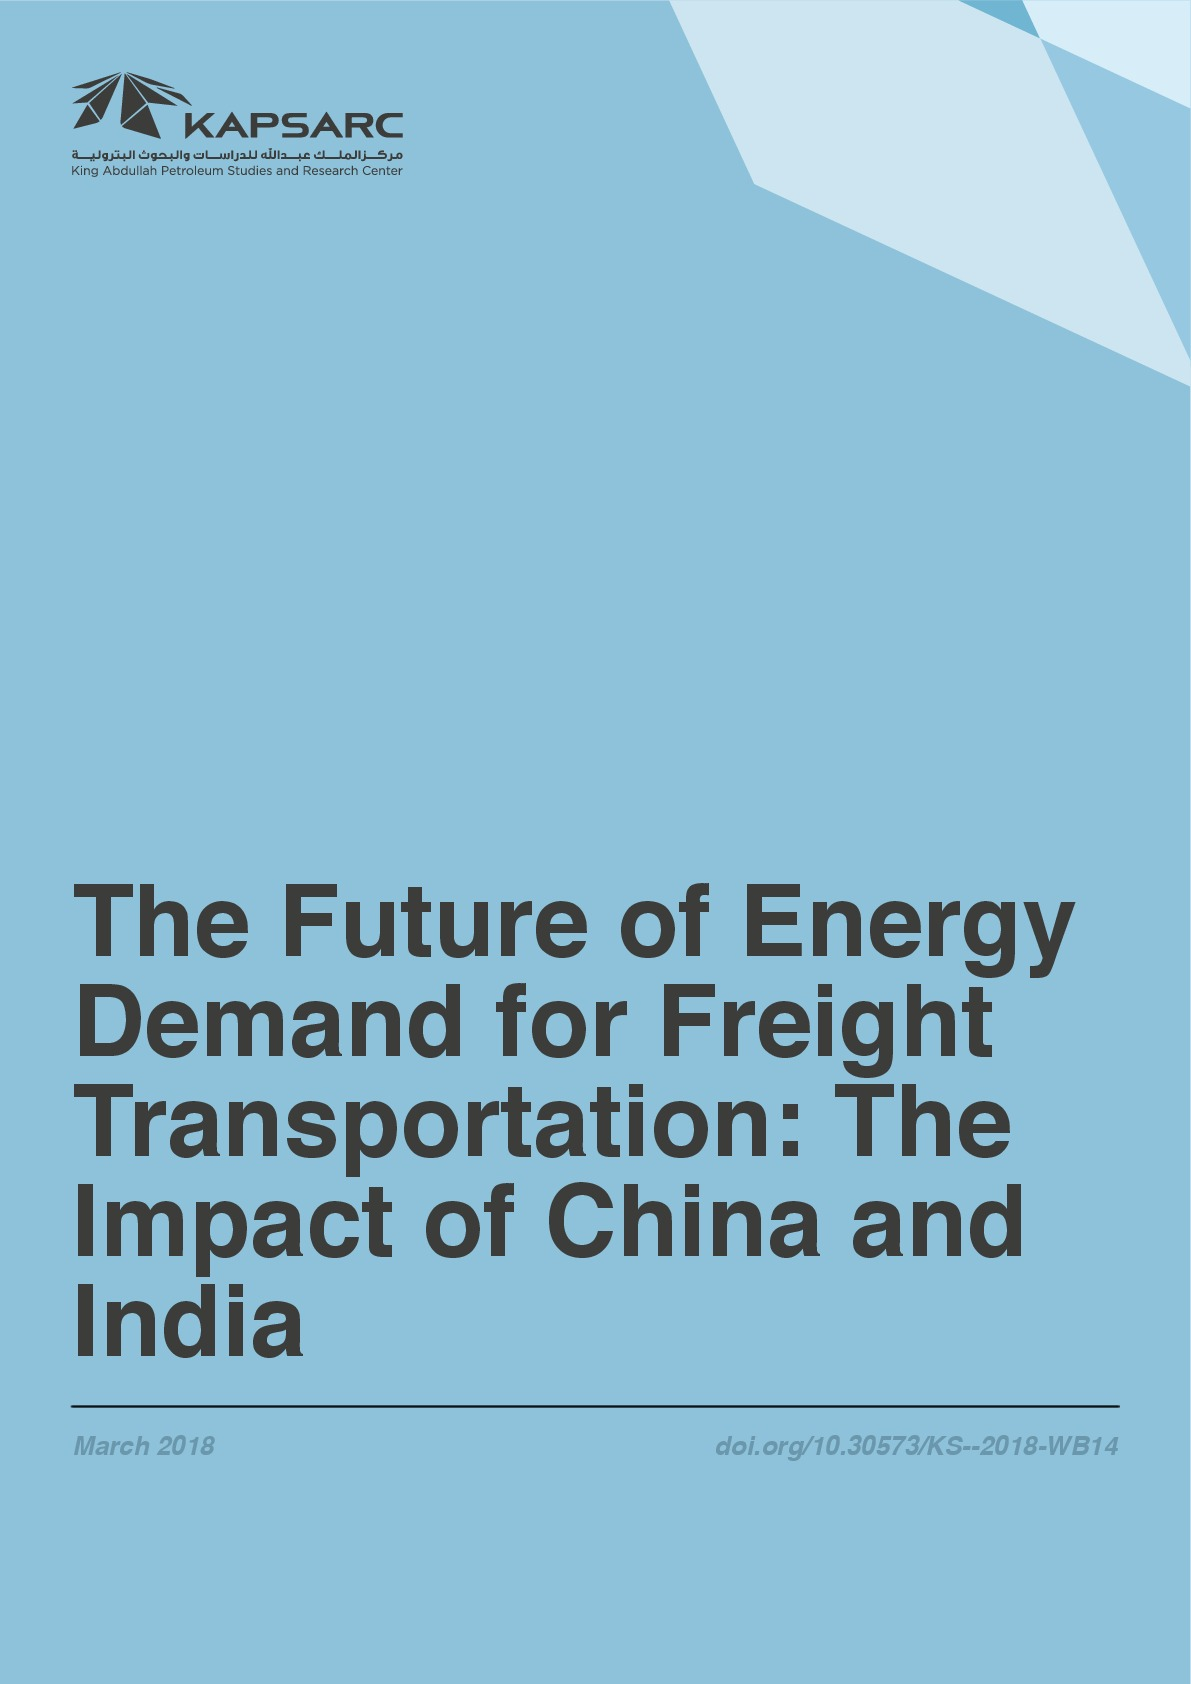 The Future of Energy Demand for Freight Transportation: The Impact of China and India